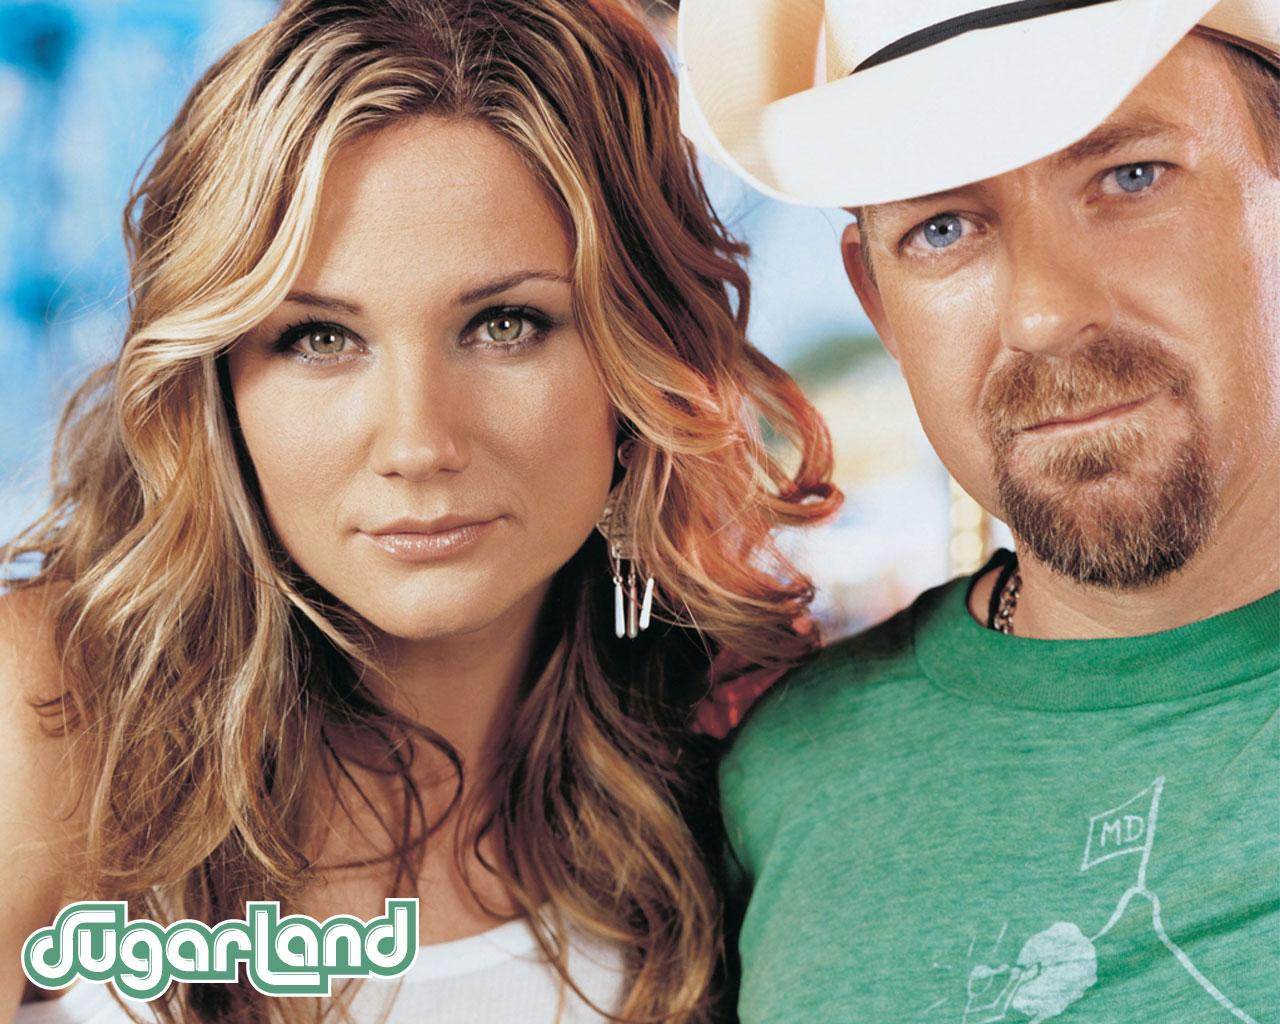 Sugarland Wallpaper #2 1280 x 1024.